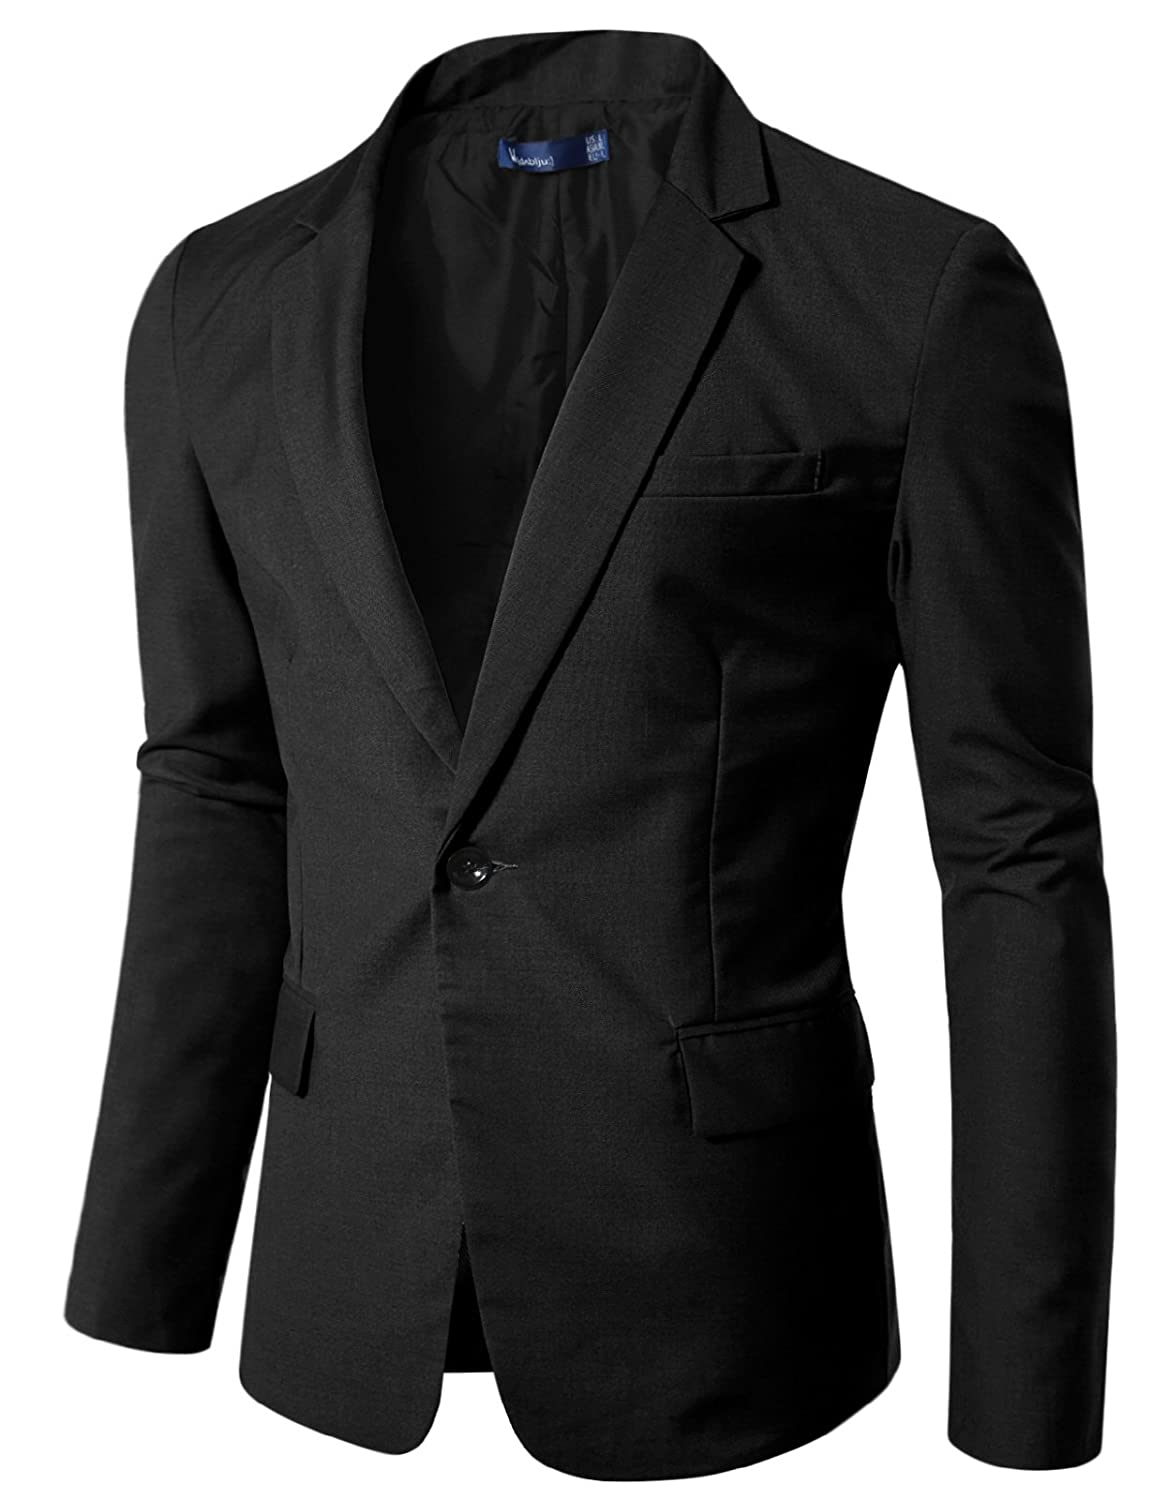 Doublju Mens Vivid Color One-button Blazer